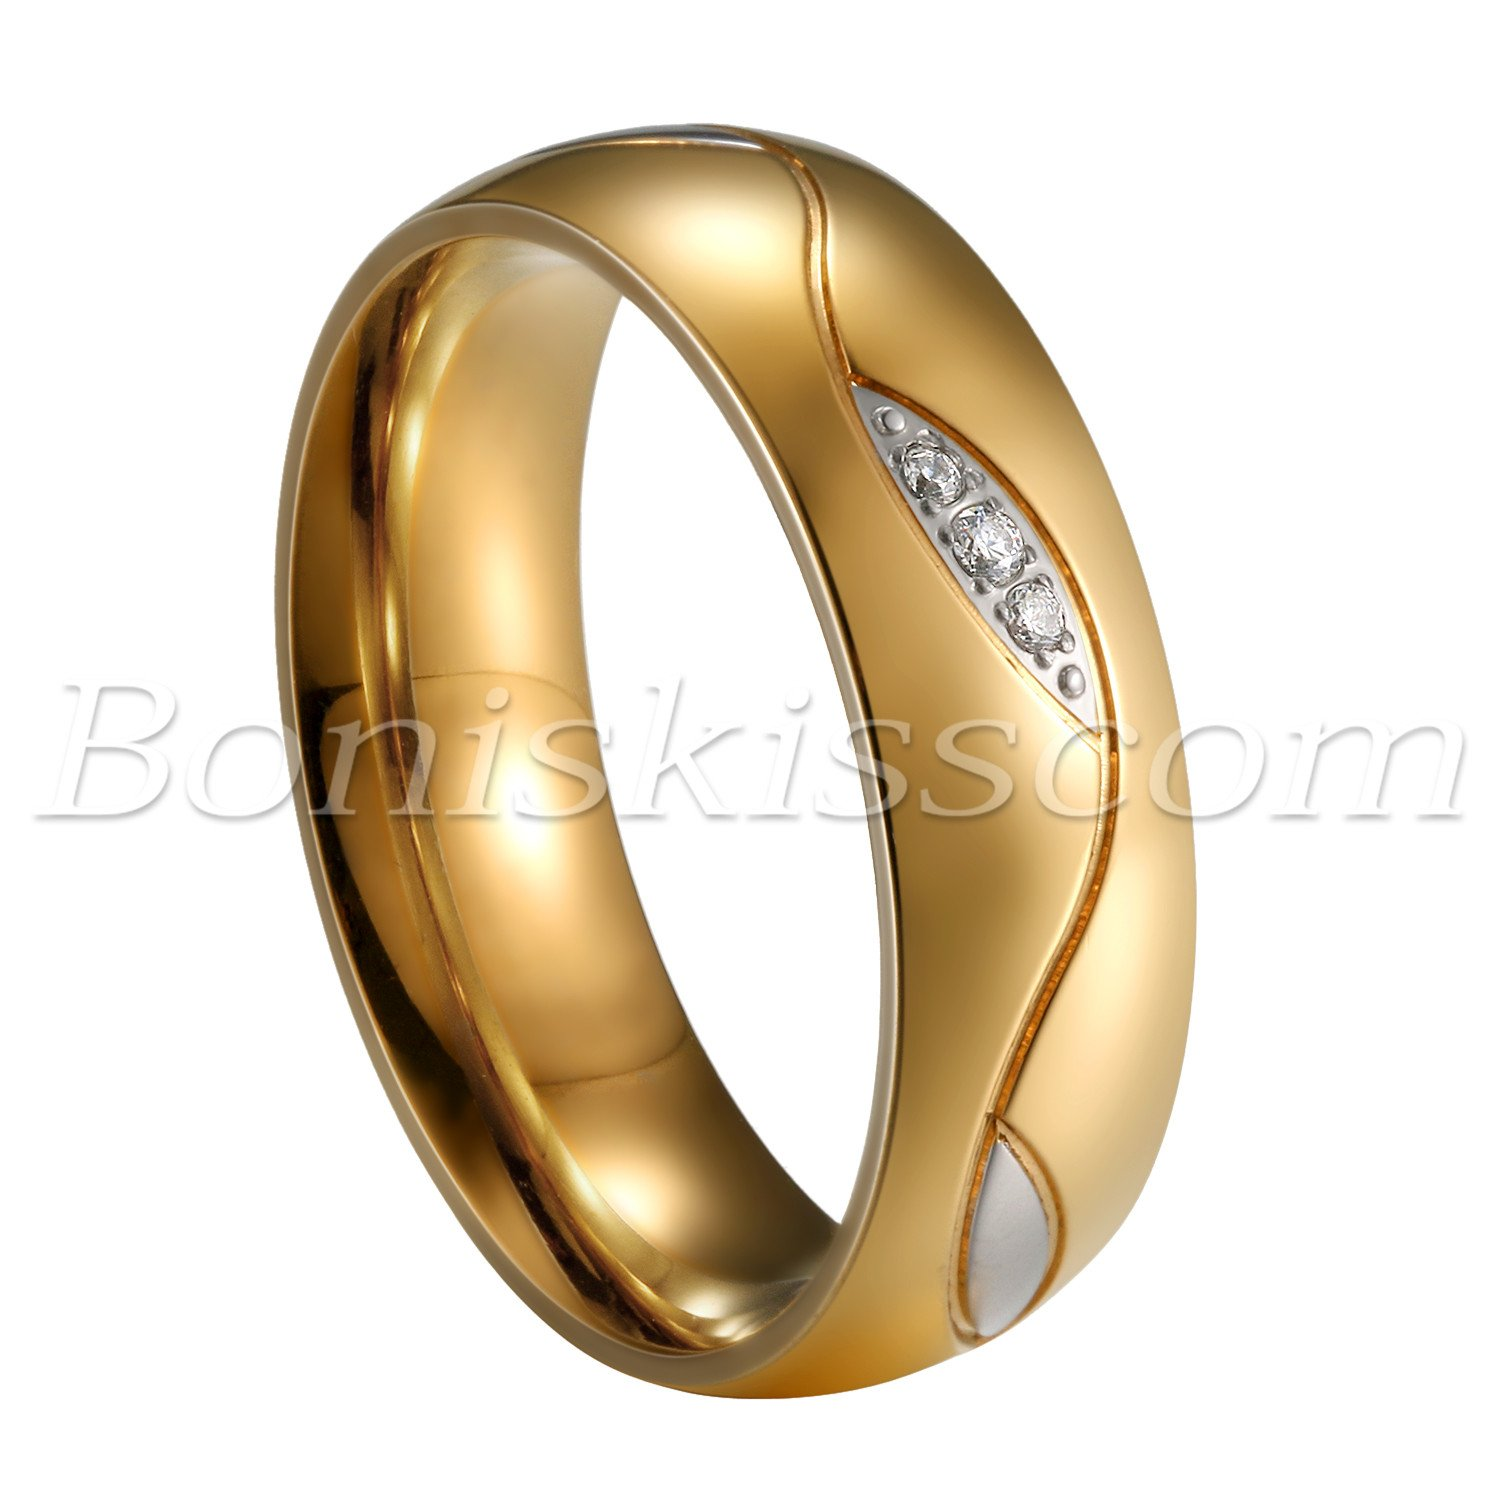 Couples-Men-039-s-Women-039-s-Classic-Gold-Stainless-Steel-Ring-Comfort-Fit-Wedding-Band thumbnail 13